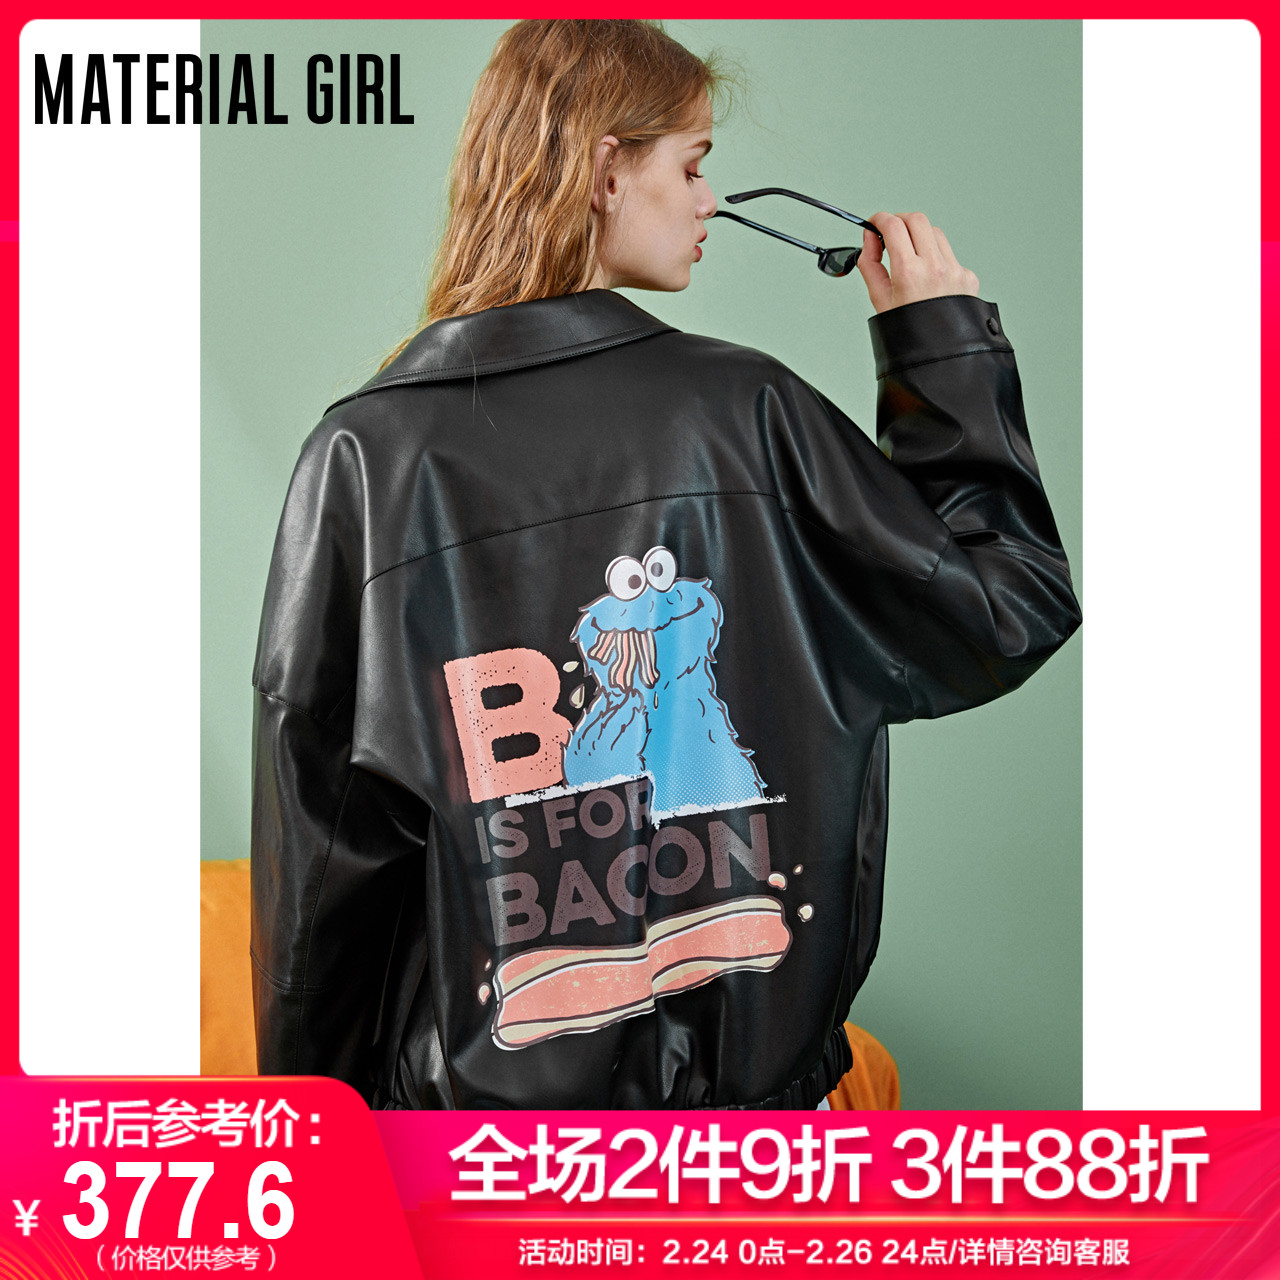 Sesame Street co branded Black PU leather women's short motorcycle jacket, new fashion in spring 2020